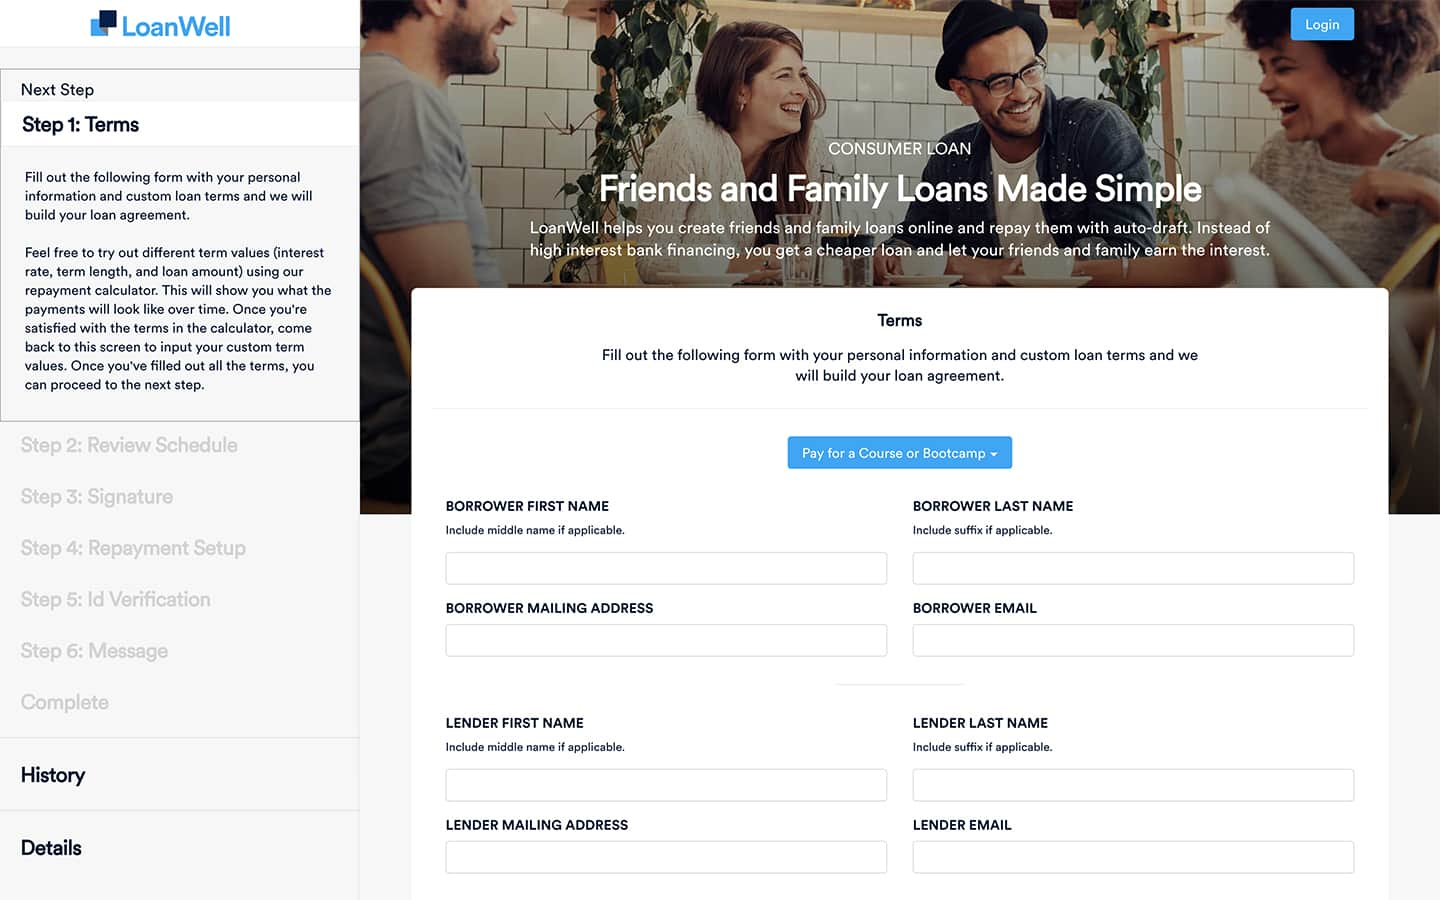 Create a custom, legal friends and family loan agreement in just a few simple steps with Loanable. Loanable guides you during each step of the process and even provides a loan calculator to help inform your agreement's terms.